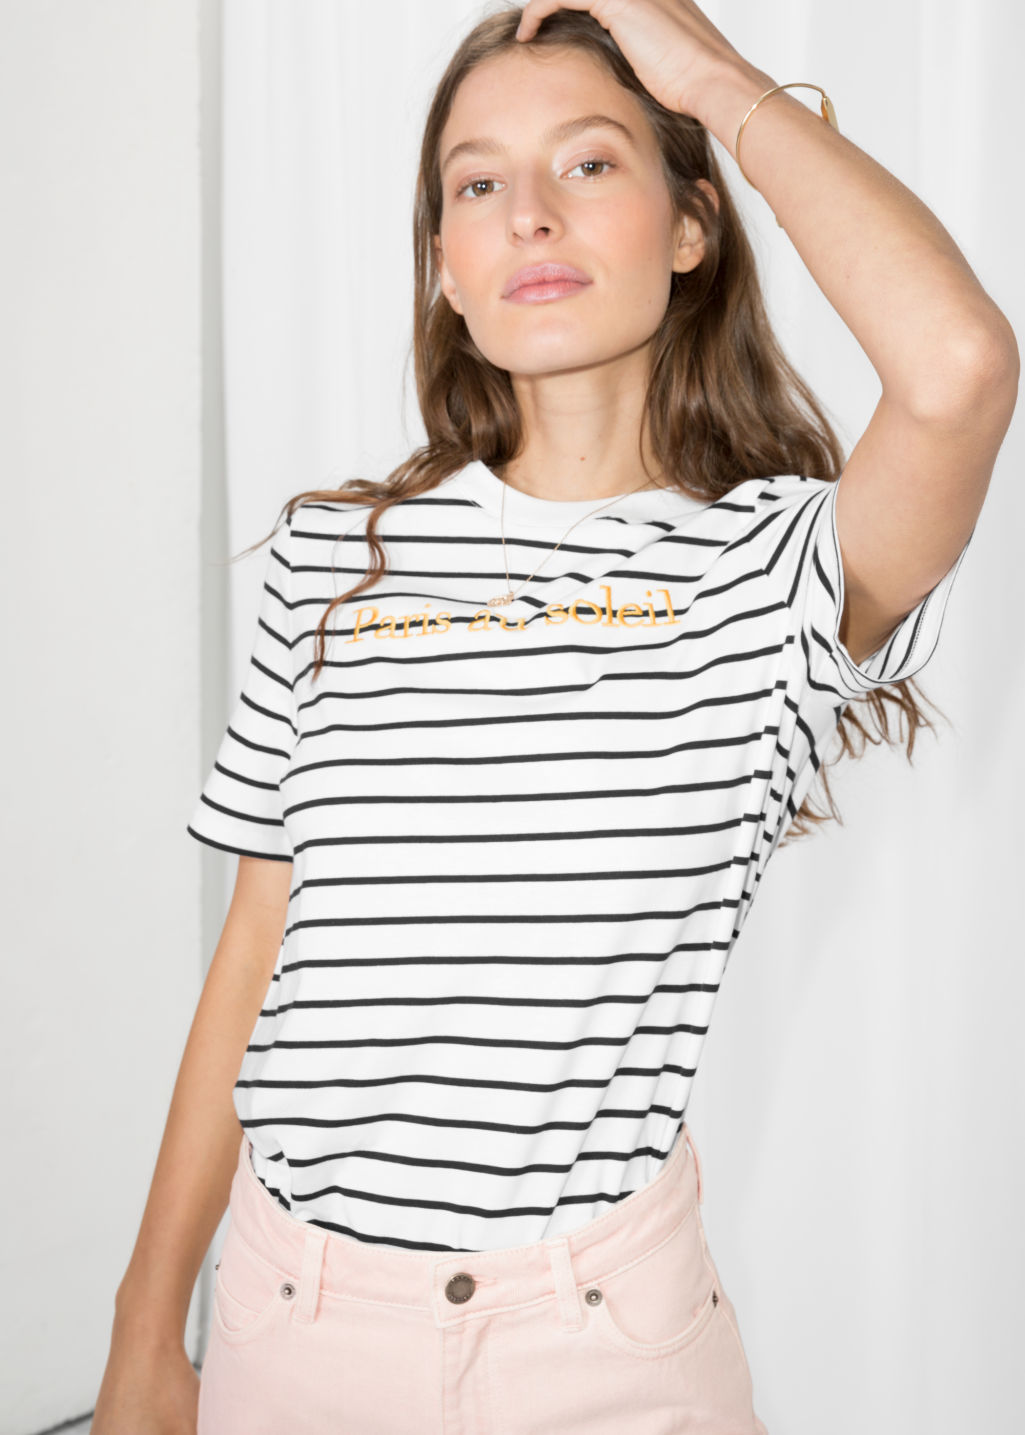 & OTHER STORIES Embroidered Striped Shirt Best Seller Sale Online Eastbay Cheap Online Clearance Prices aPRLAzEEs3